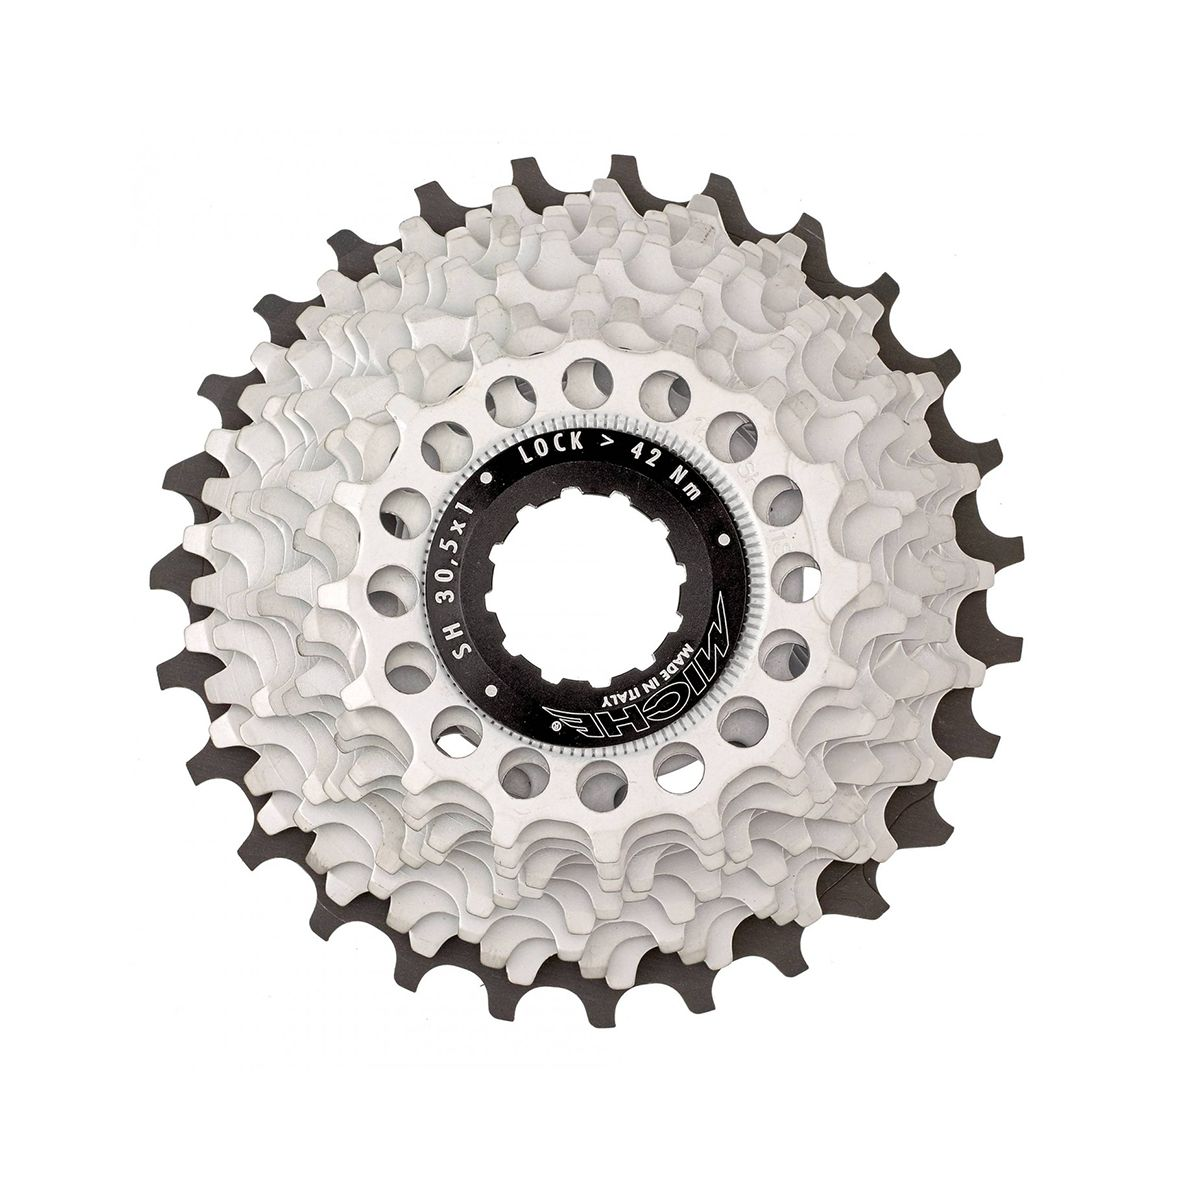 Primato 11-speed cassette for Shimano